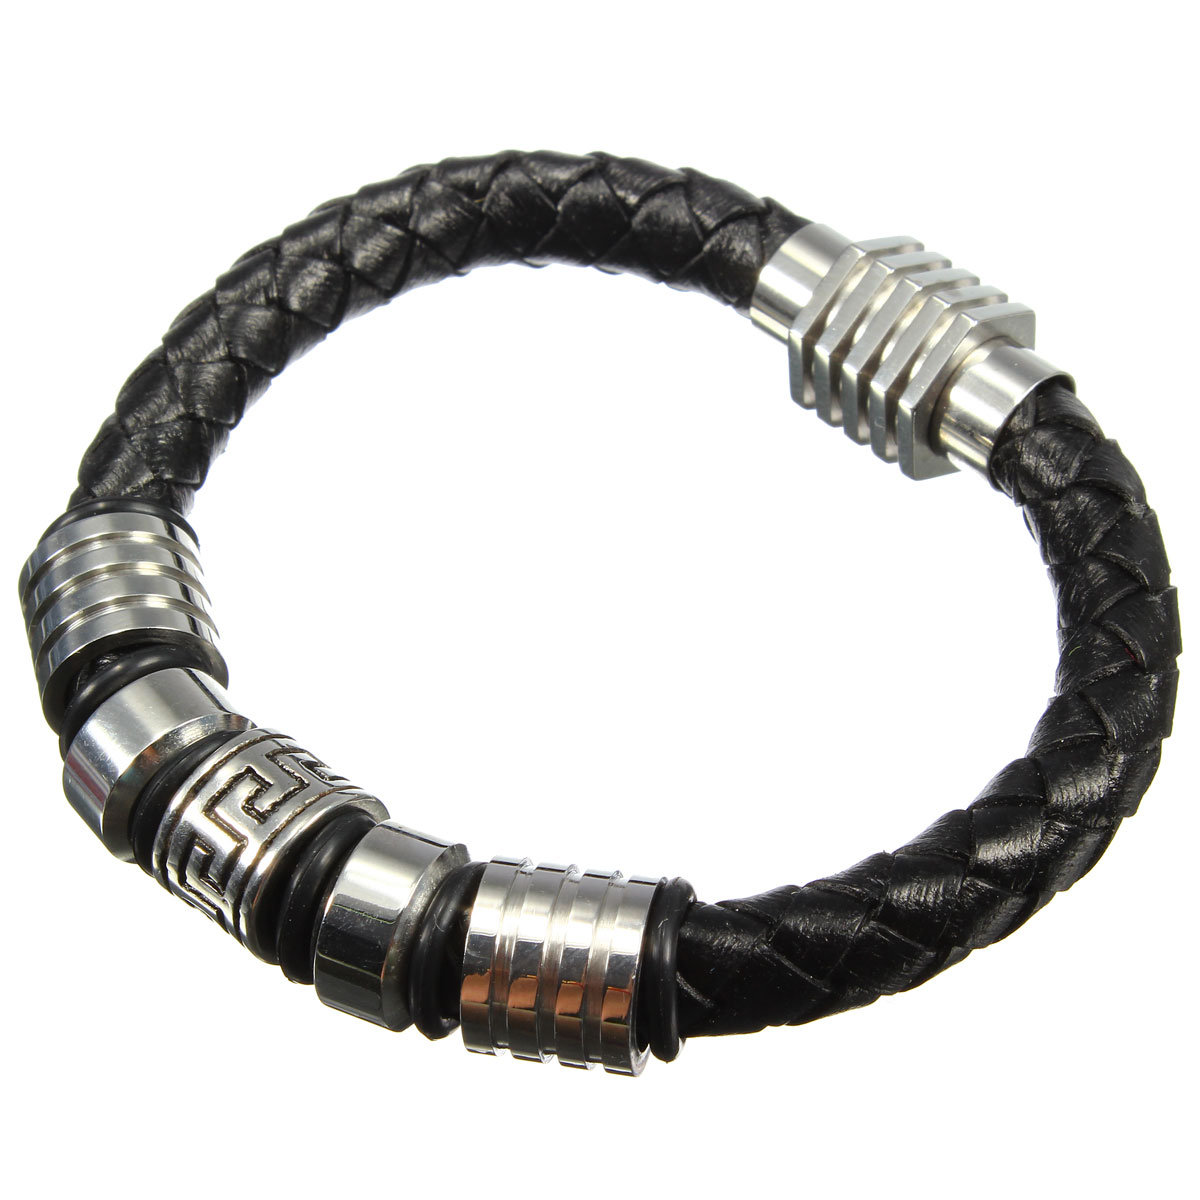 Stainless Steel Black Braided Genuine Leather Bracelet